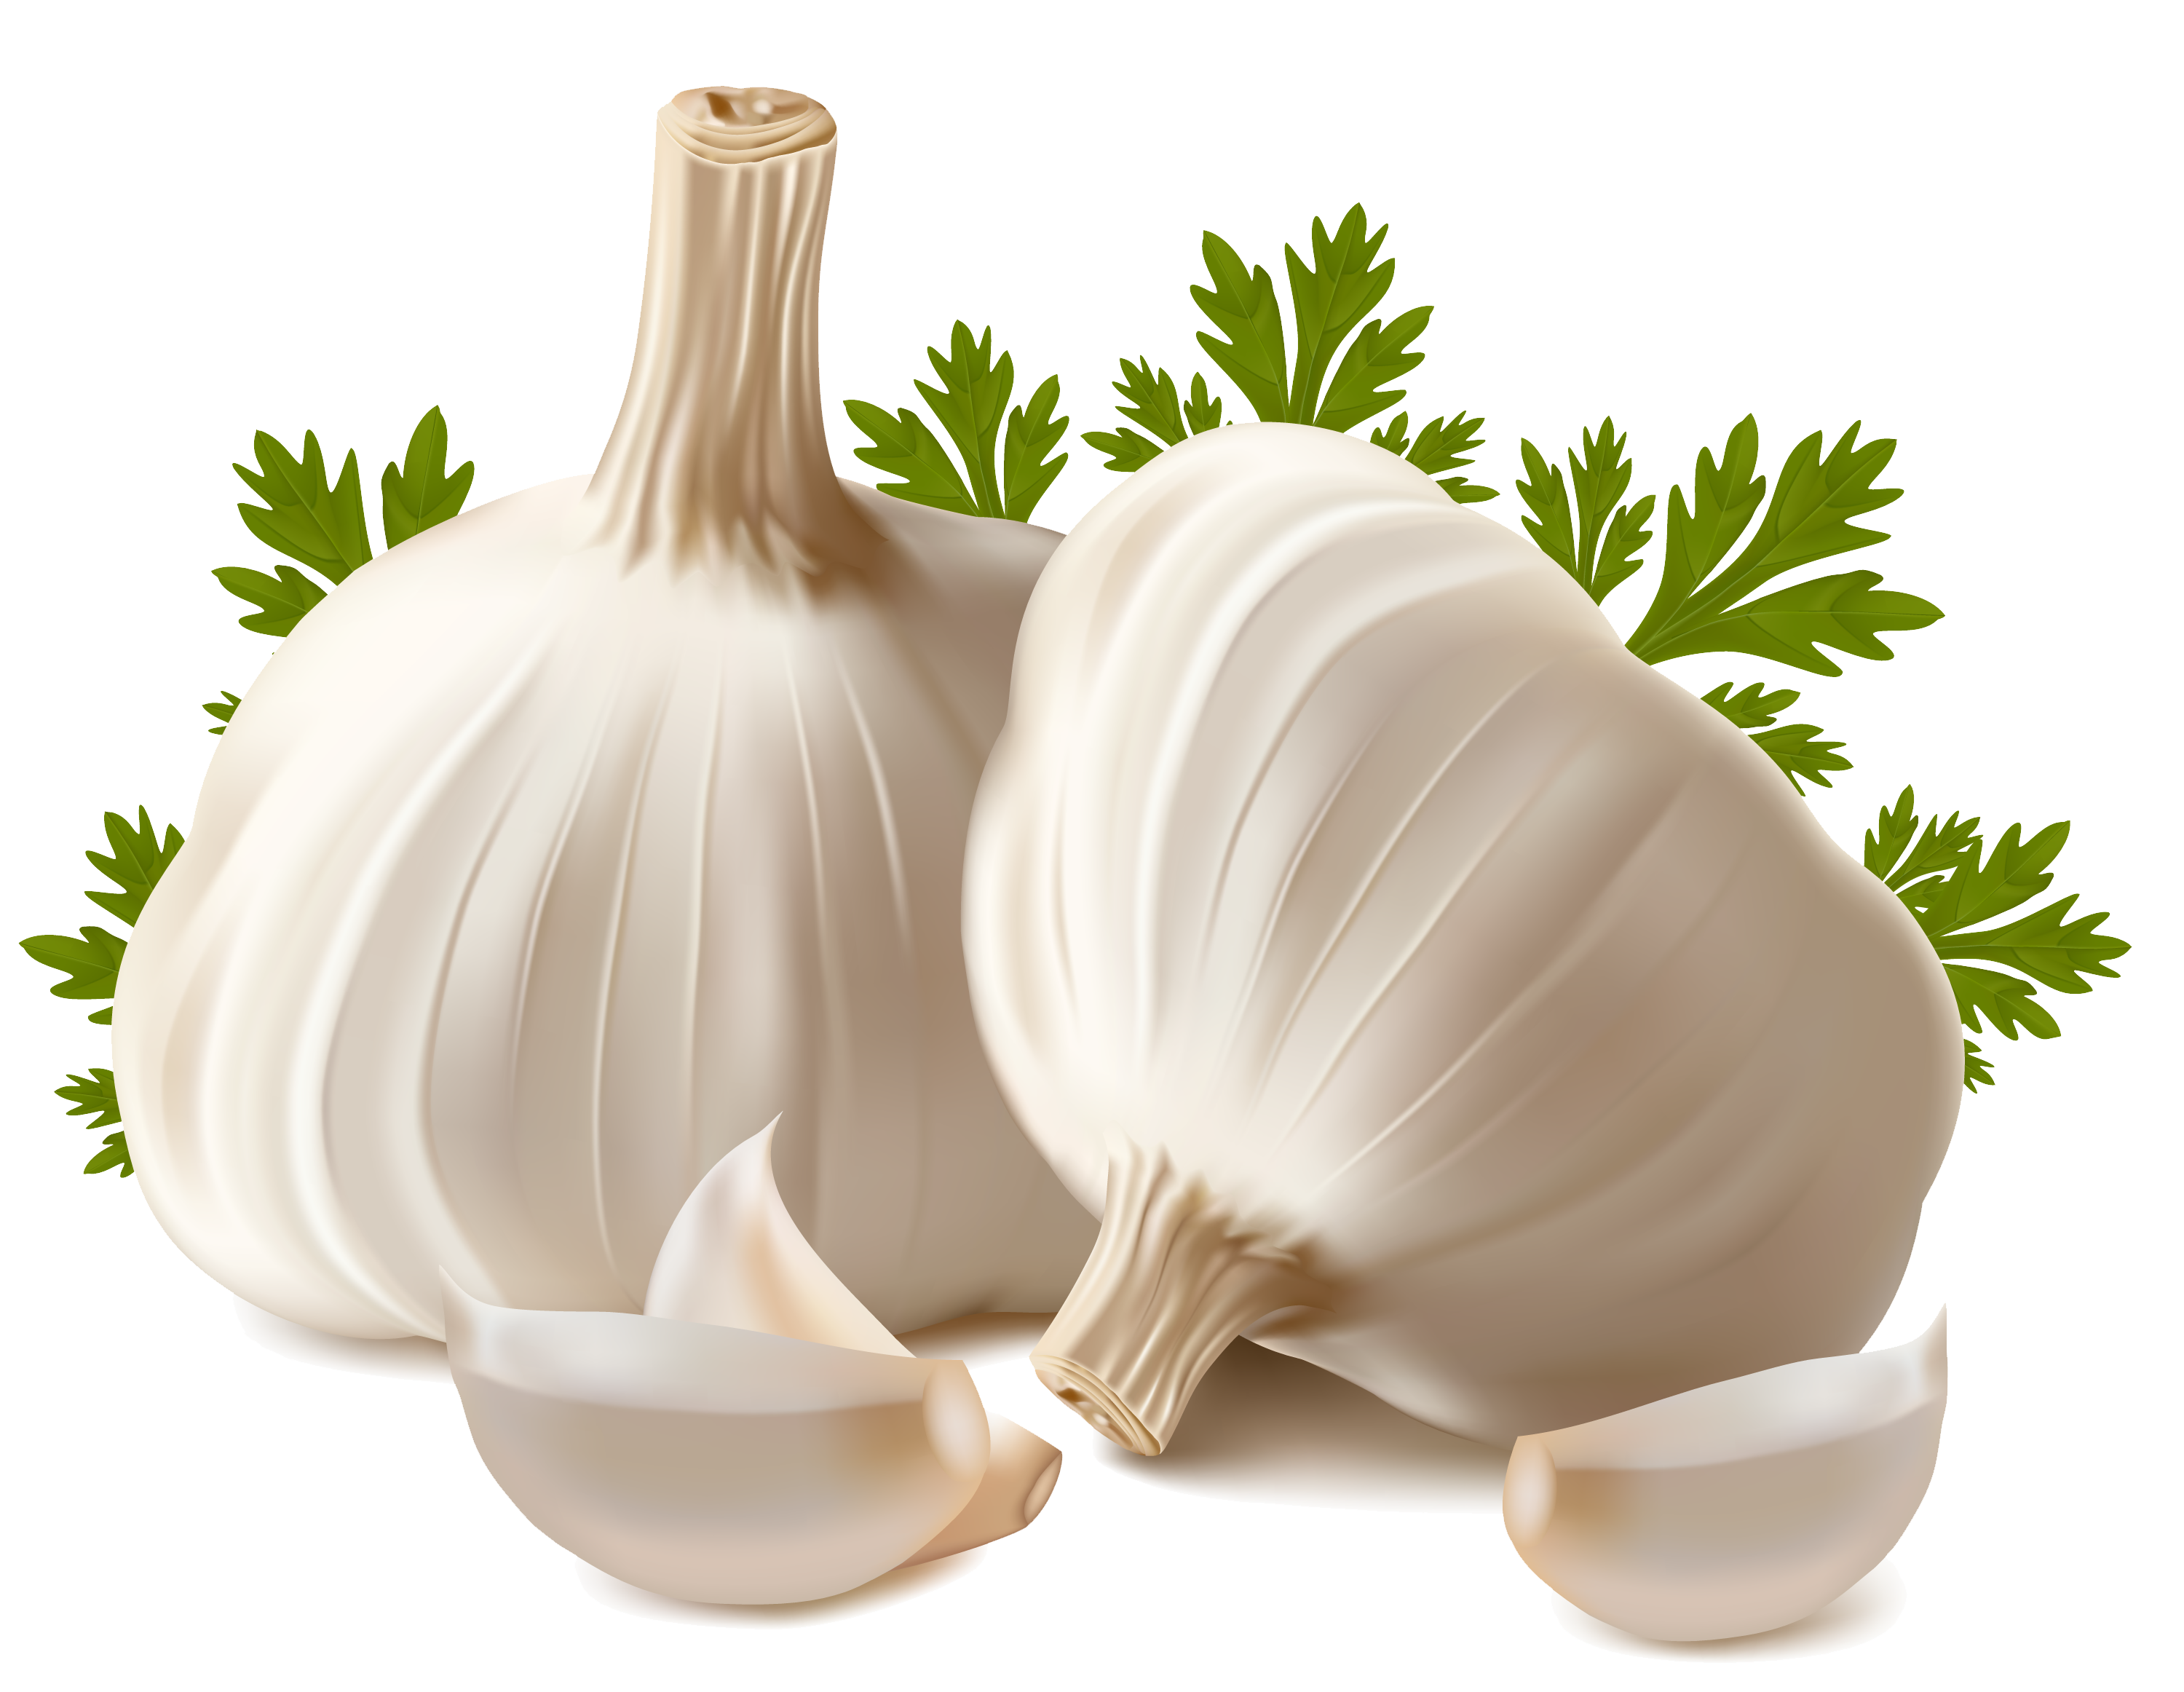 graphic royalty free Png mart. Garlic clipart.